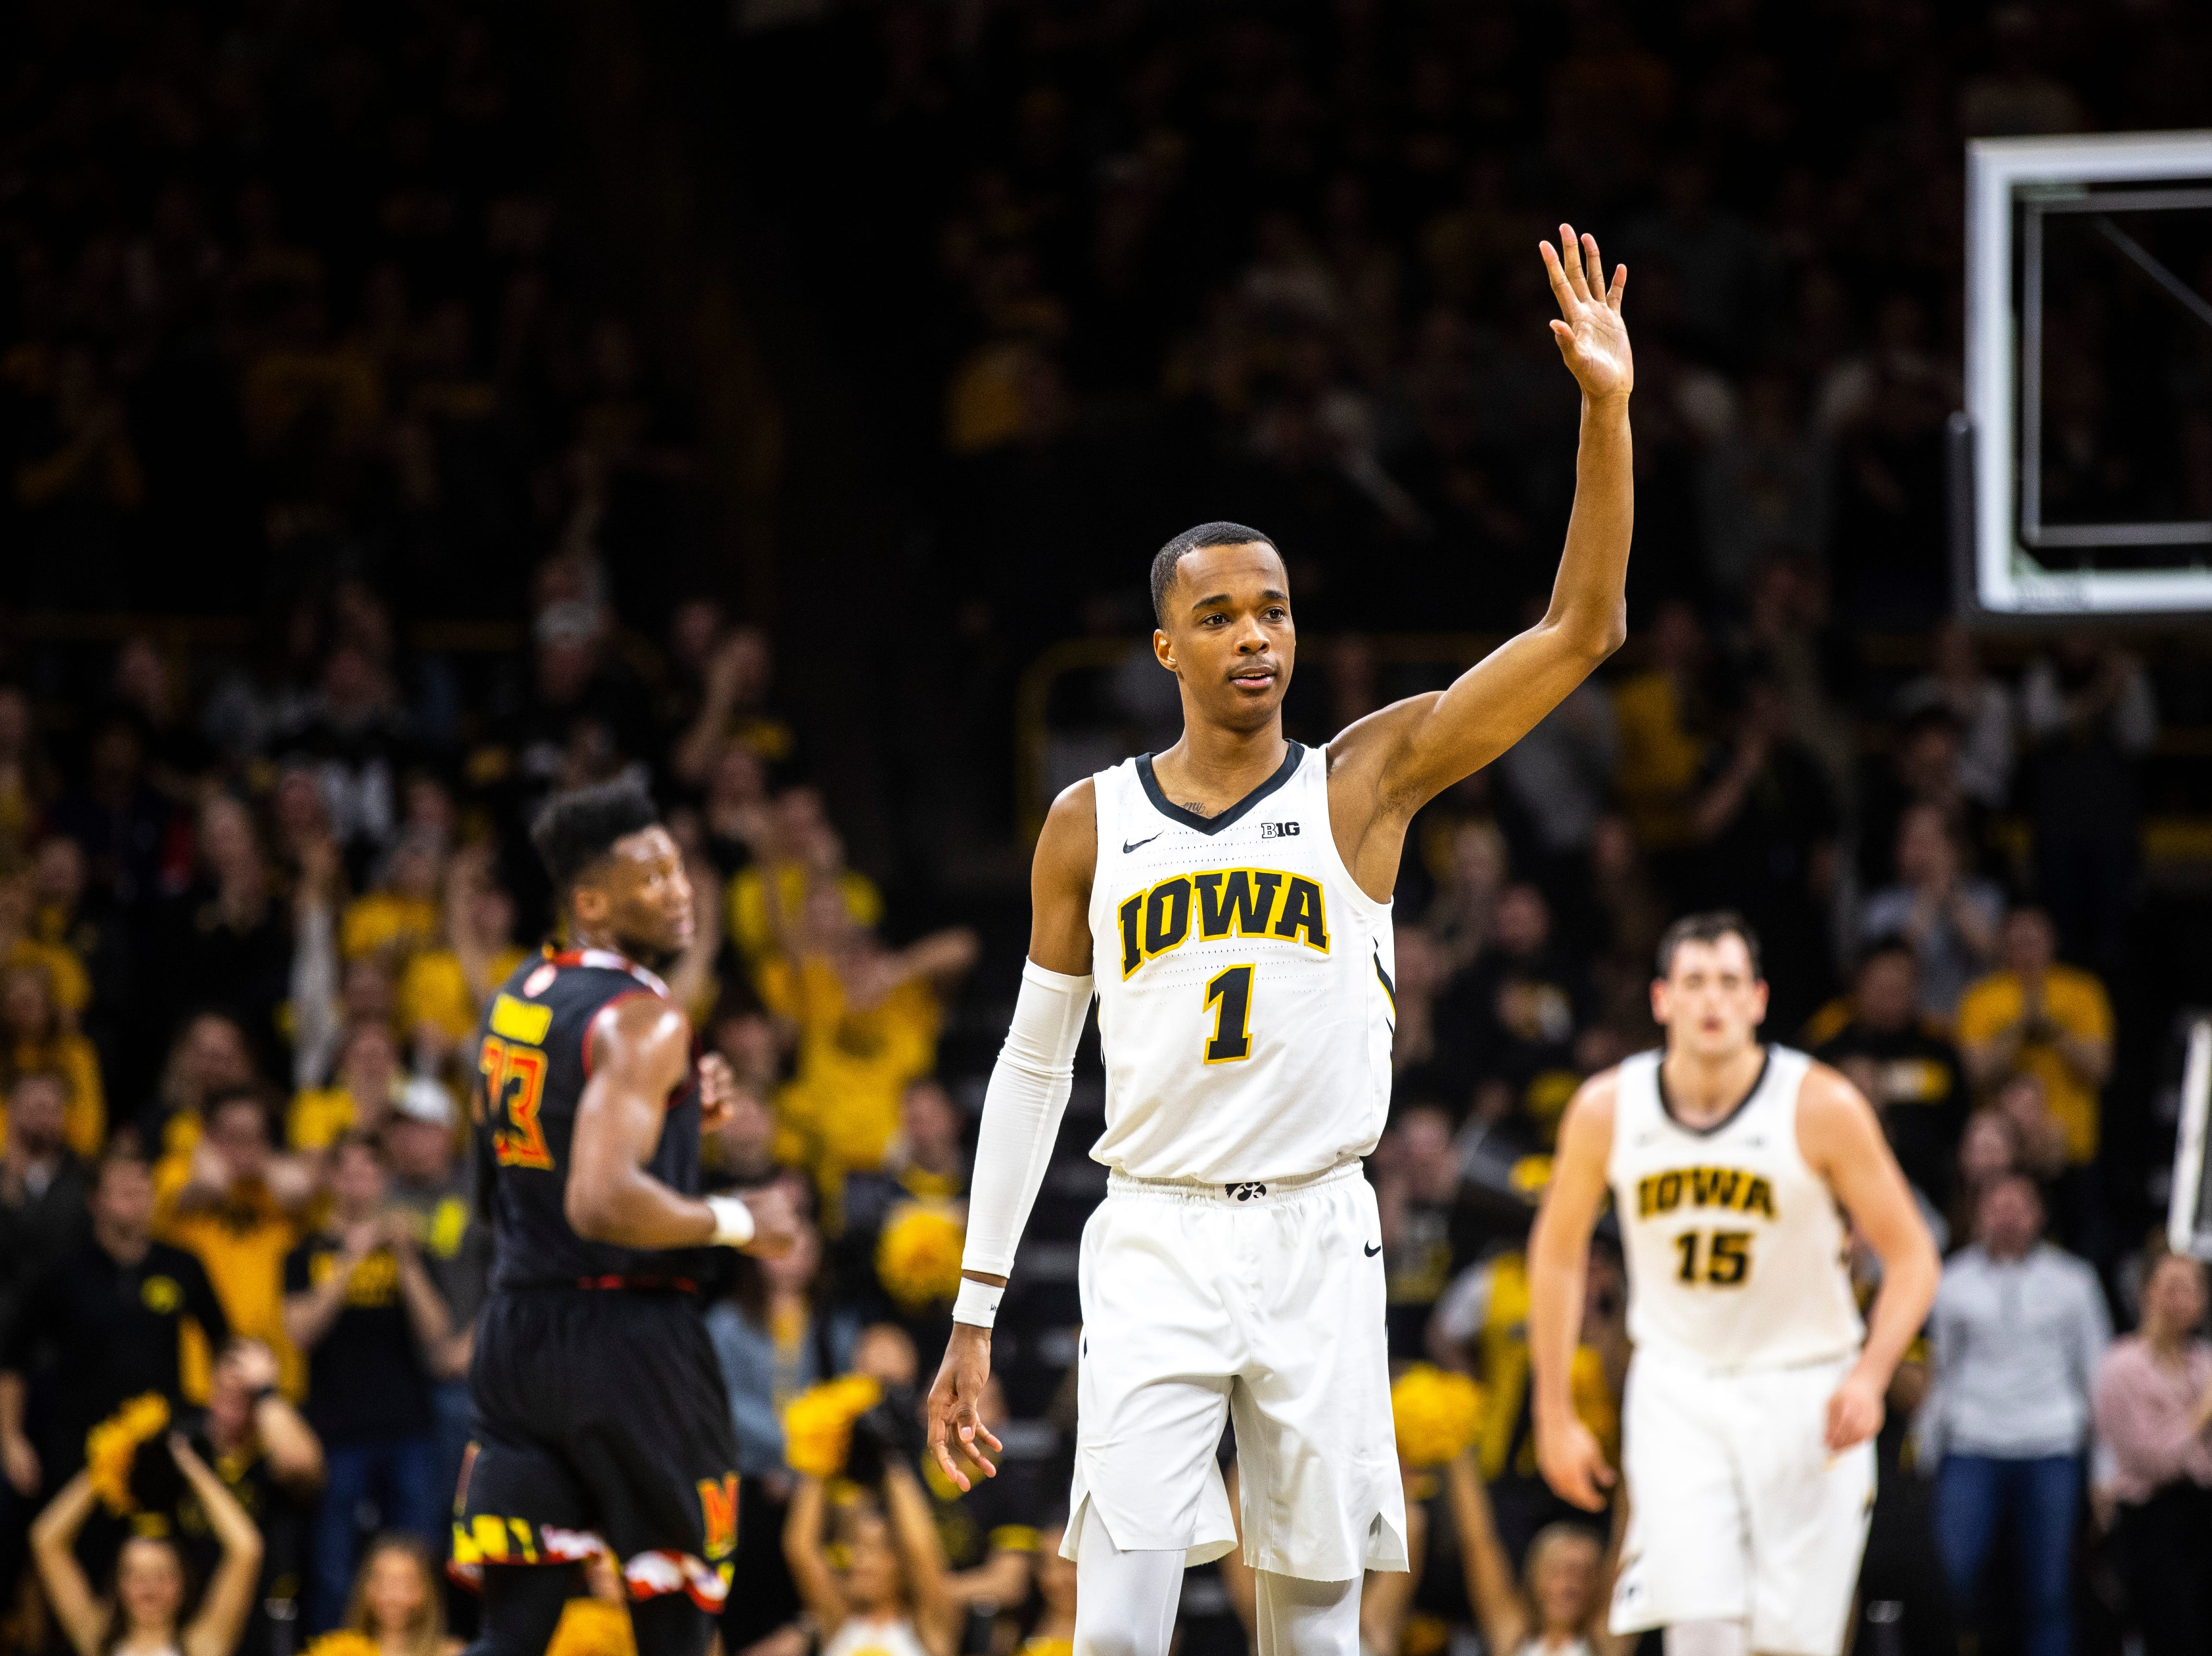 Iowa guard Maishe Dailey gestures to teammates while settling in on defense during a NCAA Big Ten Conference men's basketball game on Tuesday, Feb. 19, 2019 at Carver-Hawkeye Arena in Iowa City, Iowa.